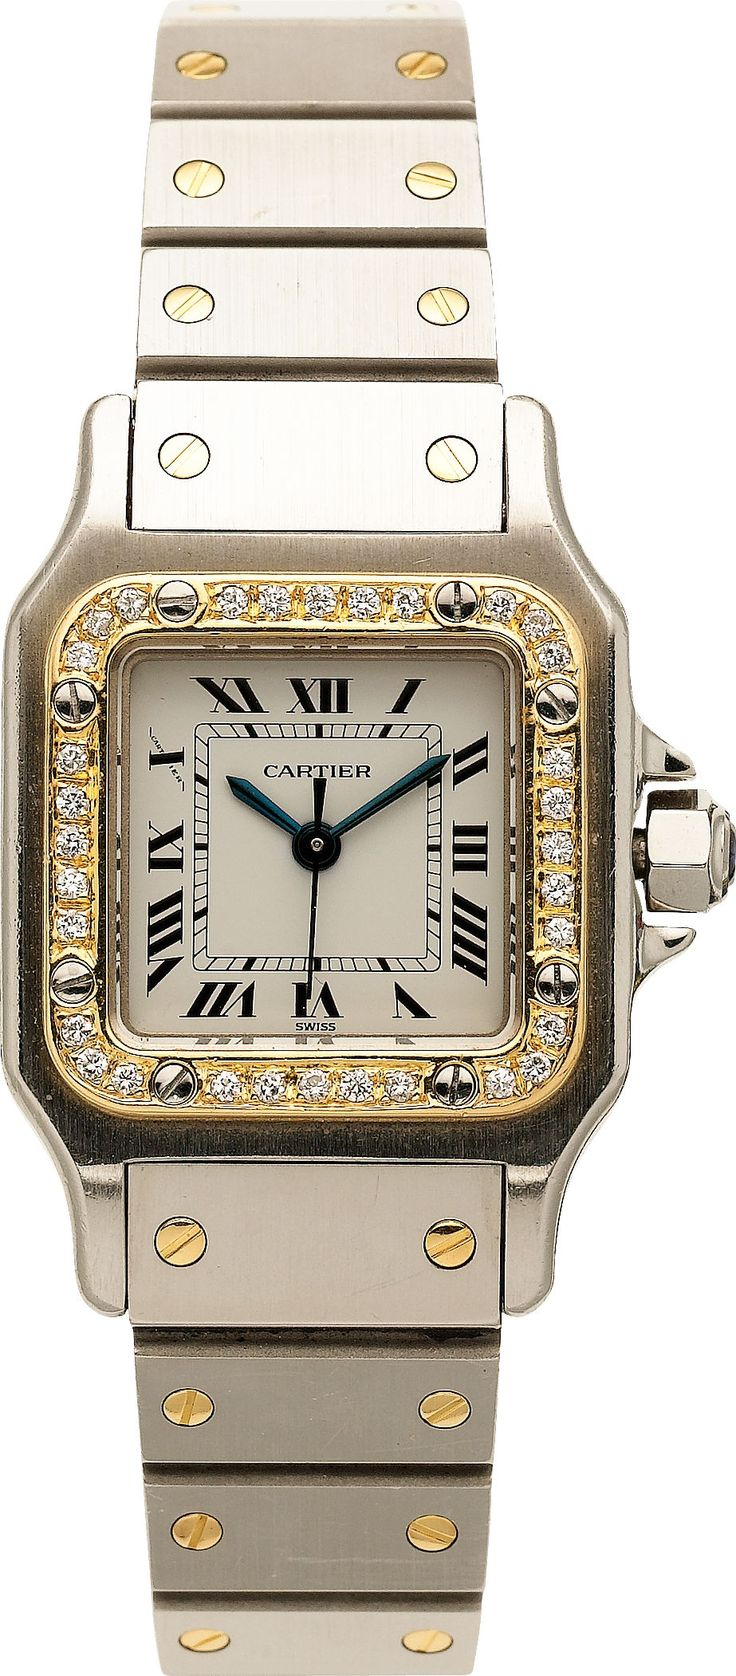 Cartier Lady's Diamond, Gold, Stainless Steel Santos | Lot #59001 | Heritage Auctions